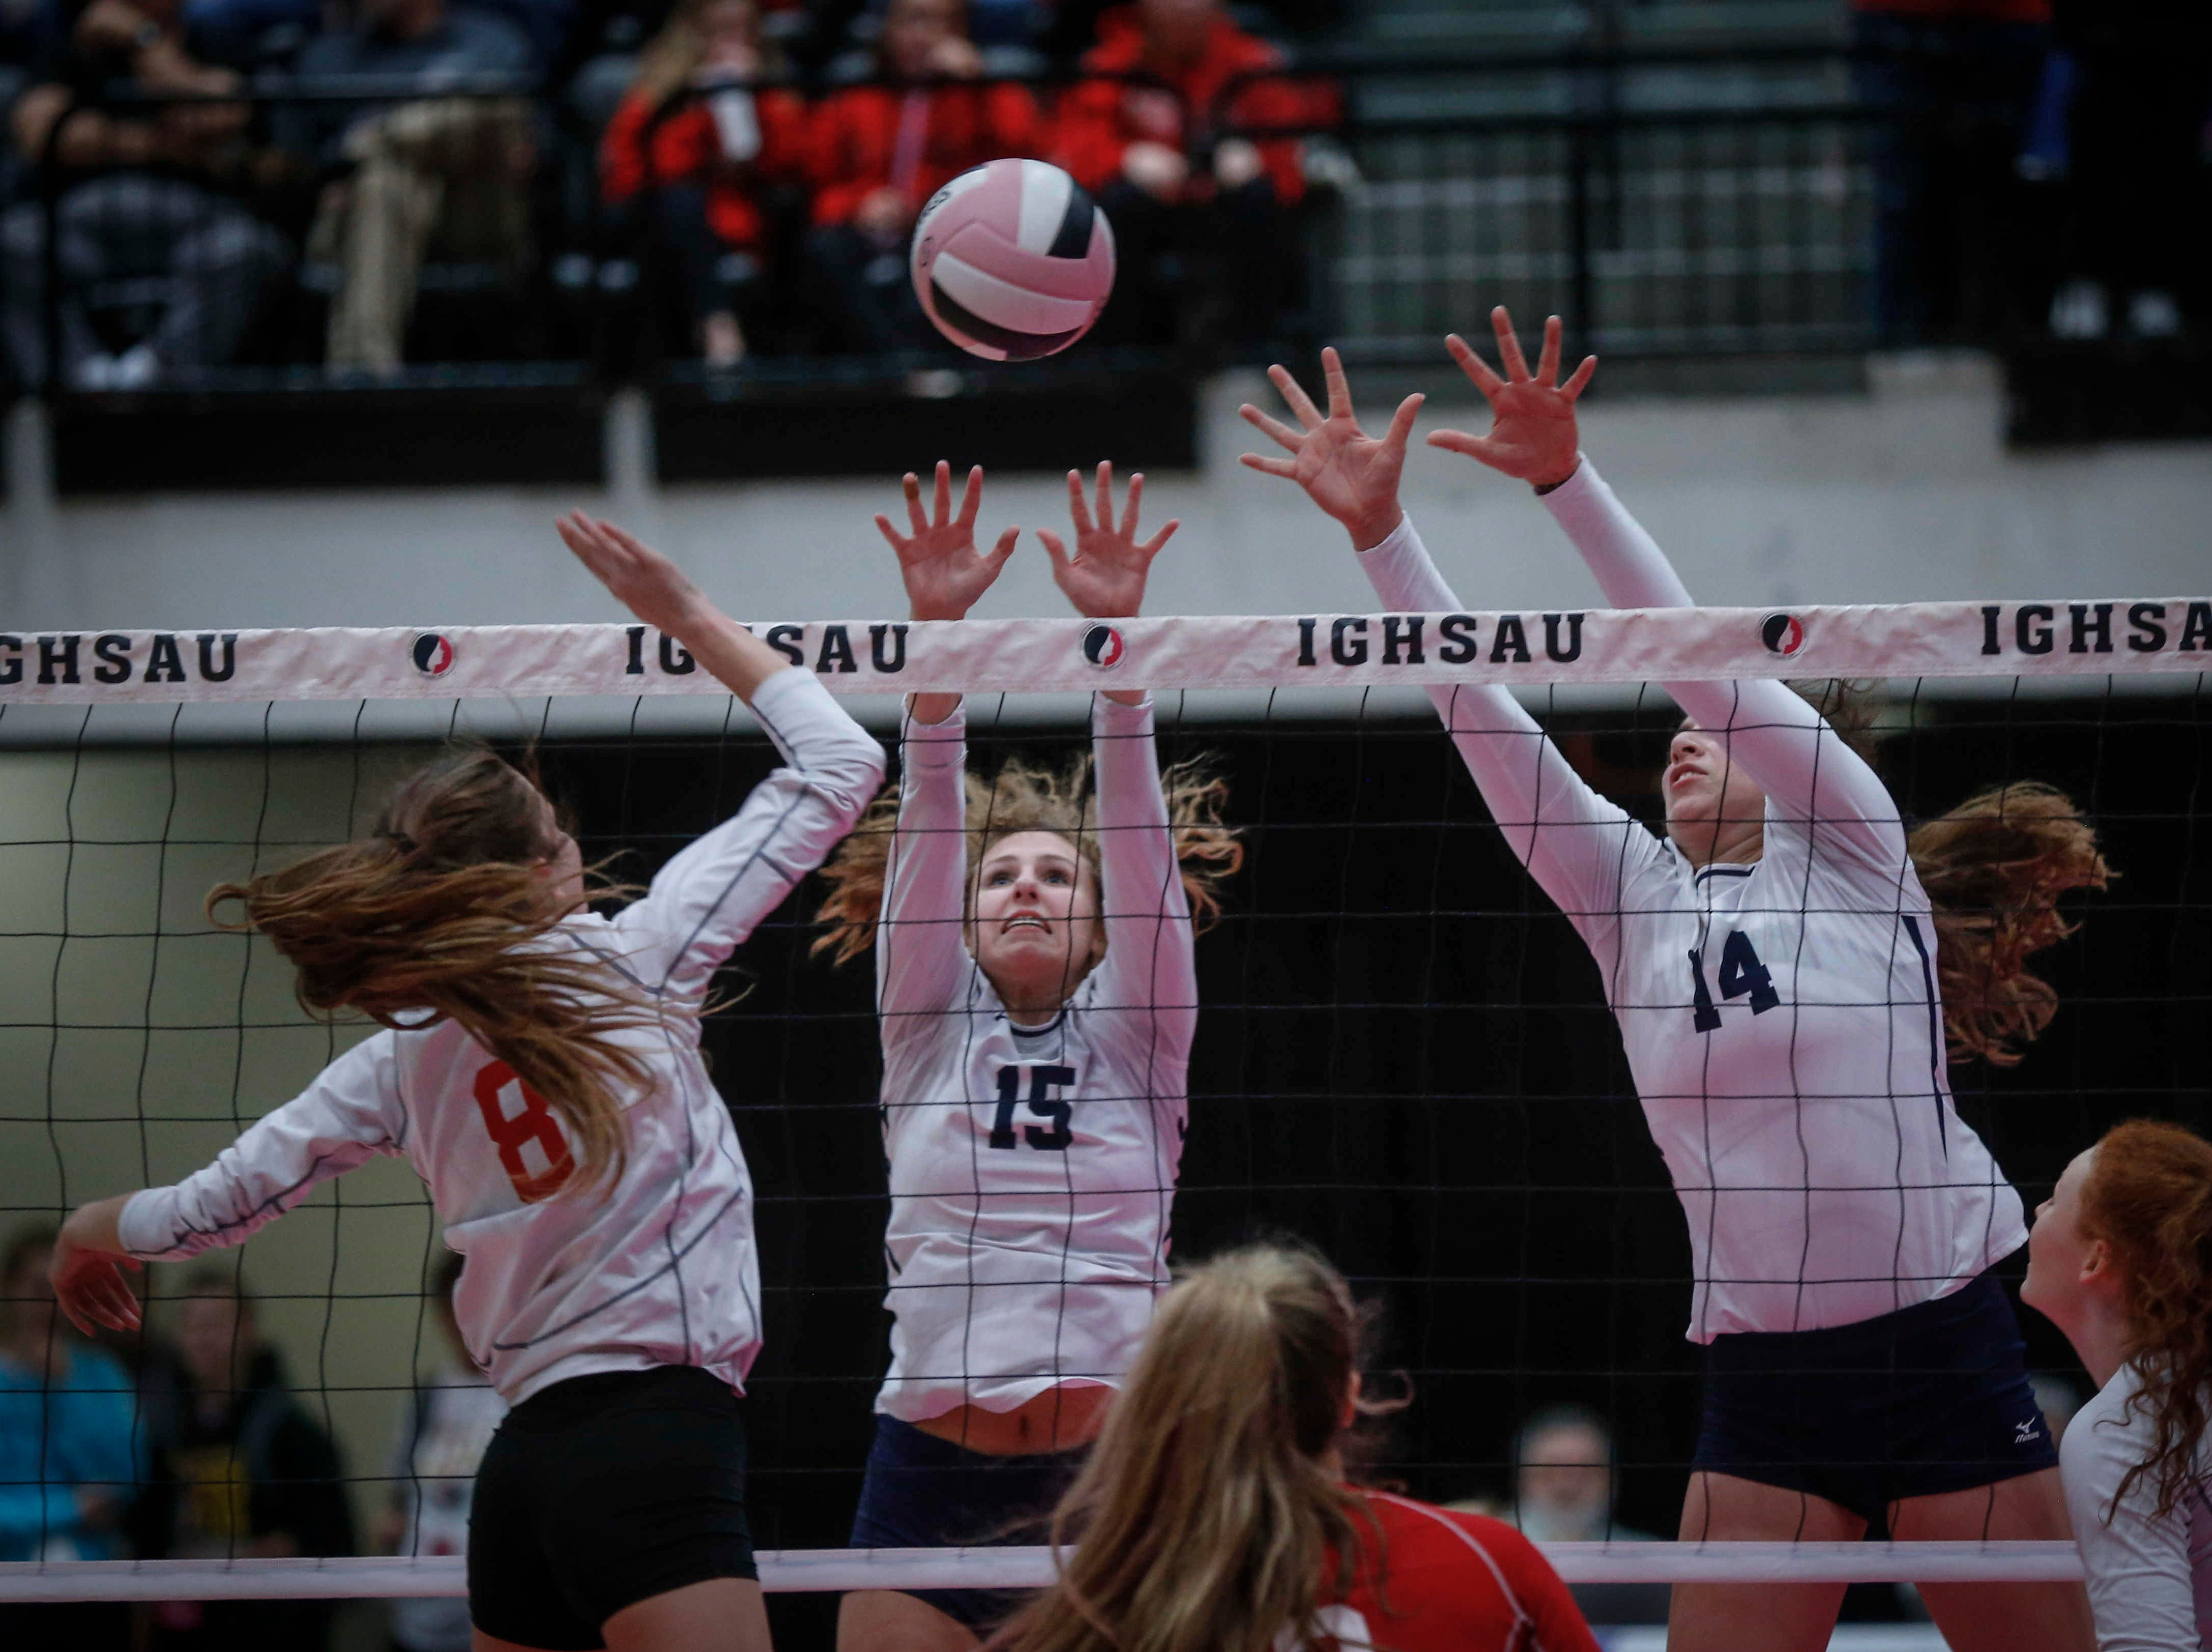 Dallas Center-Grimes junior Katelyn Knudsen, left, pushes the ball over Cedar Rapids Xavier's Jazmine Yamilkoski (No. 15) and Olivia Richardson in their Class 4A match during the 2018 Iowa High School state volleyball tournament on Thursday, Nov. 8, 2018, in Cedar Rapids.